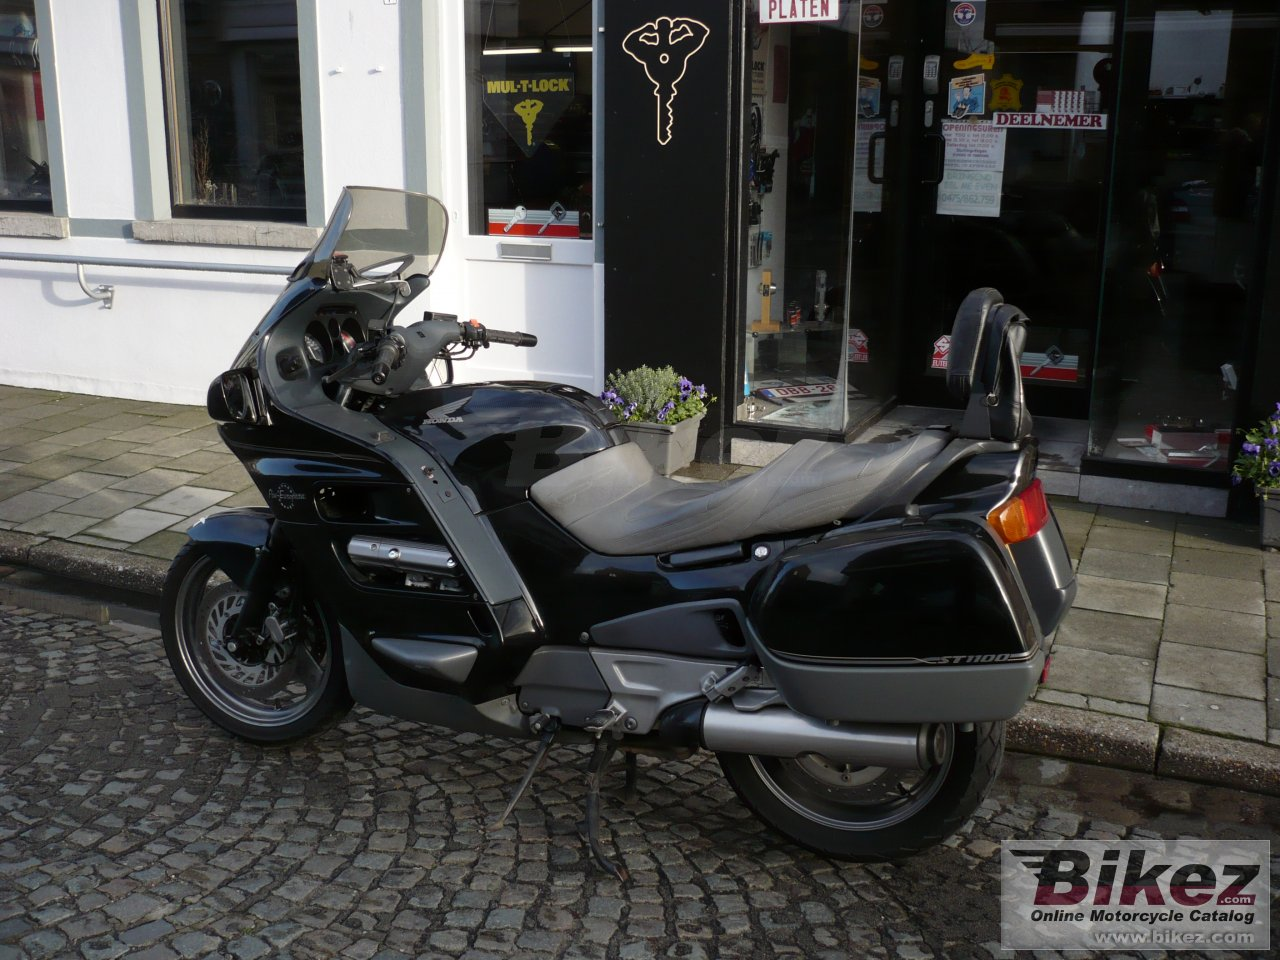 st 1100 pan-european